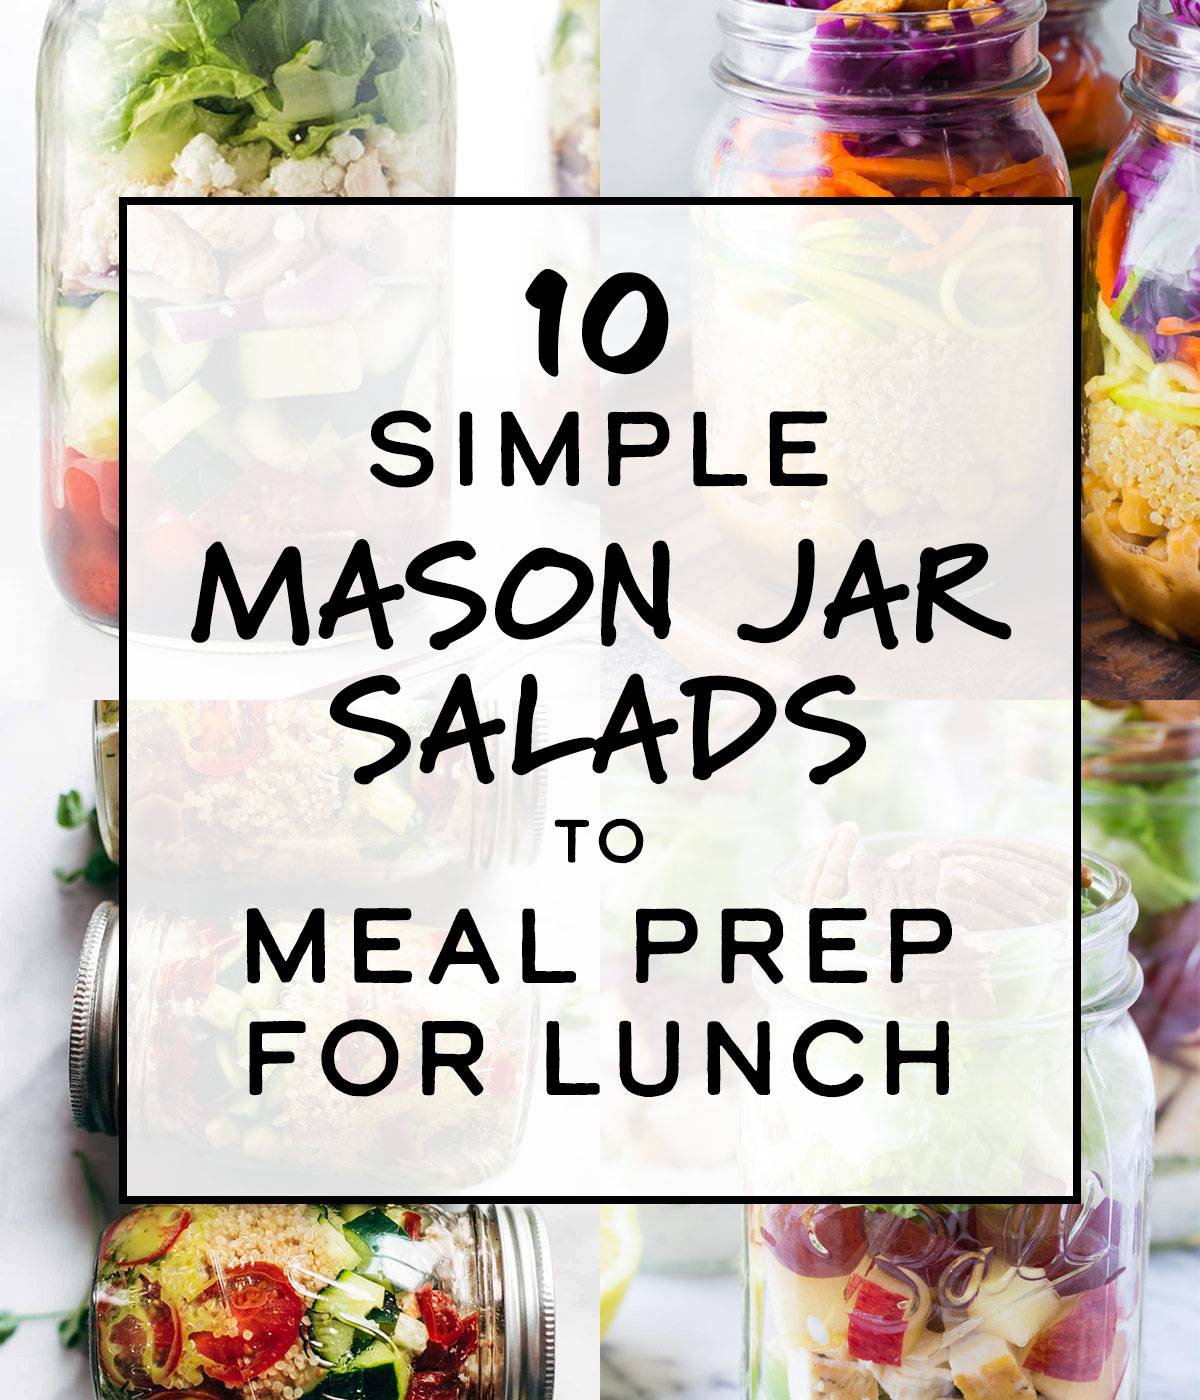 cover title image for 10 simple mason jar salads to meal prep for lunch